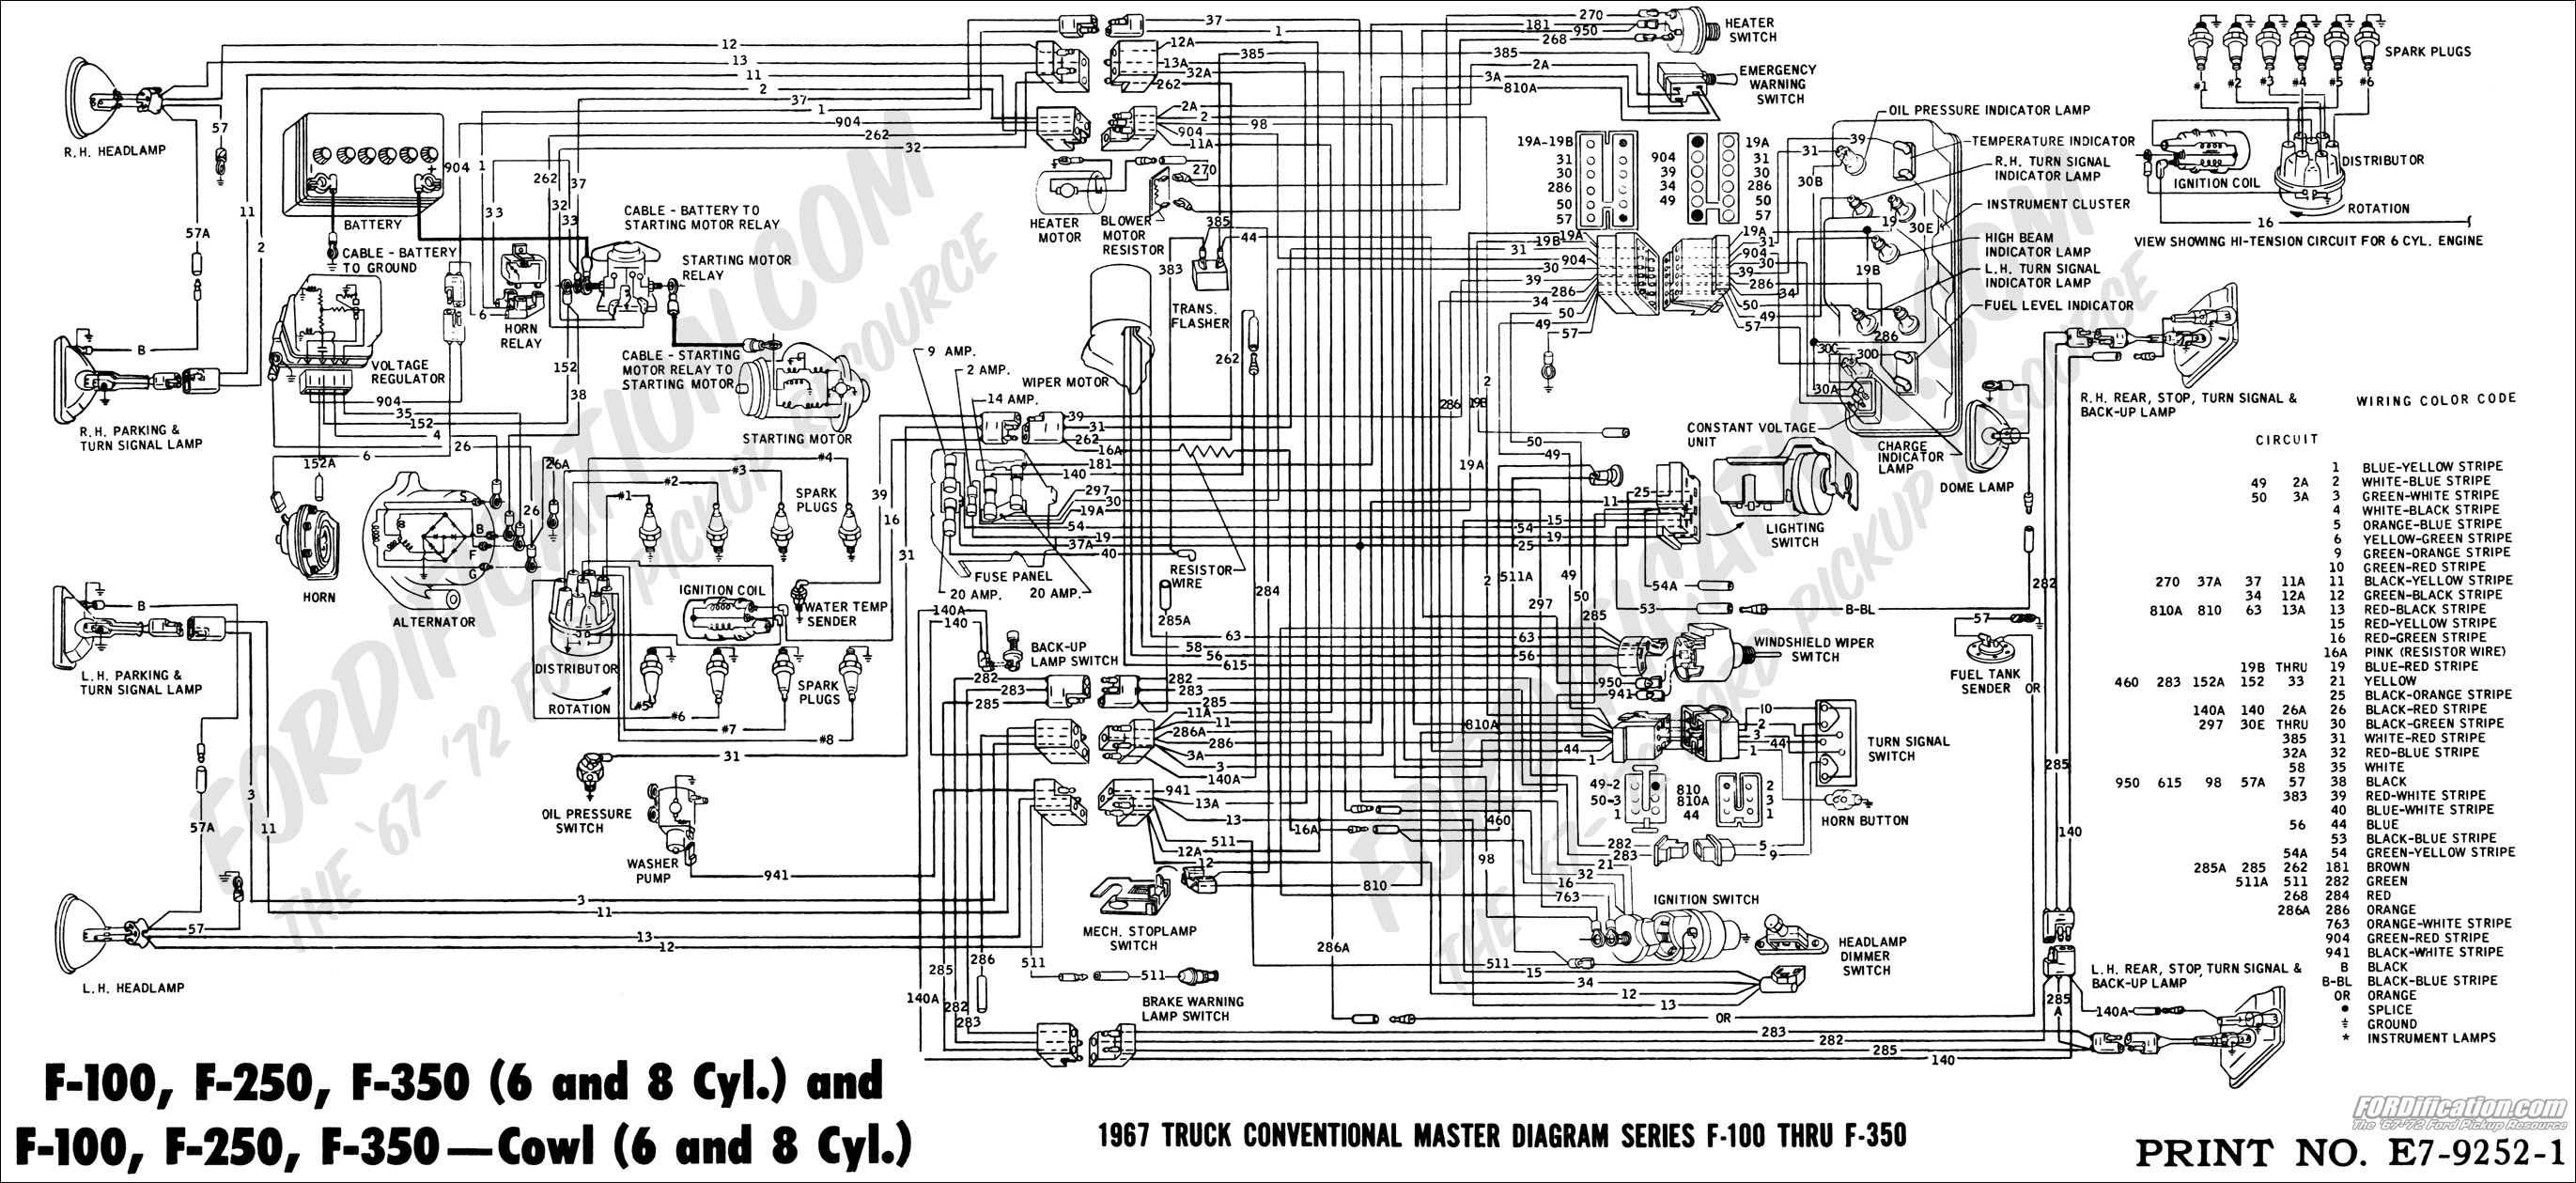 f250 wiring schematic wiring diagram for you all u2022 rh onlinetuner co 2002 f250 mirror wiring diagram 2002 f250 wiring diagram pdf